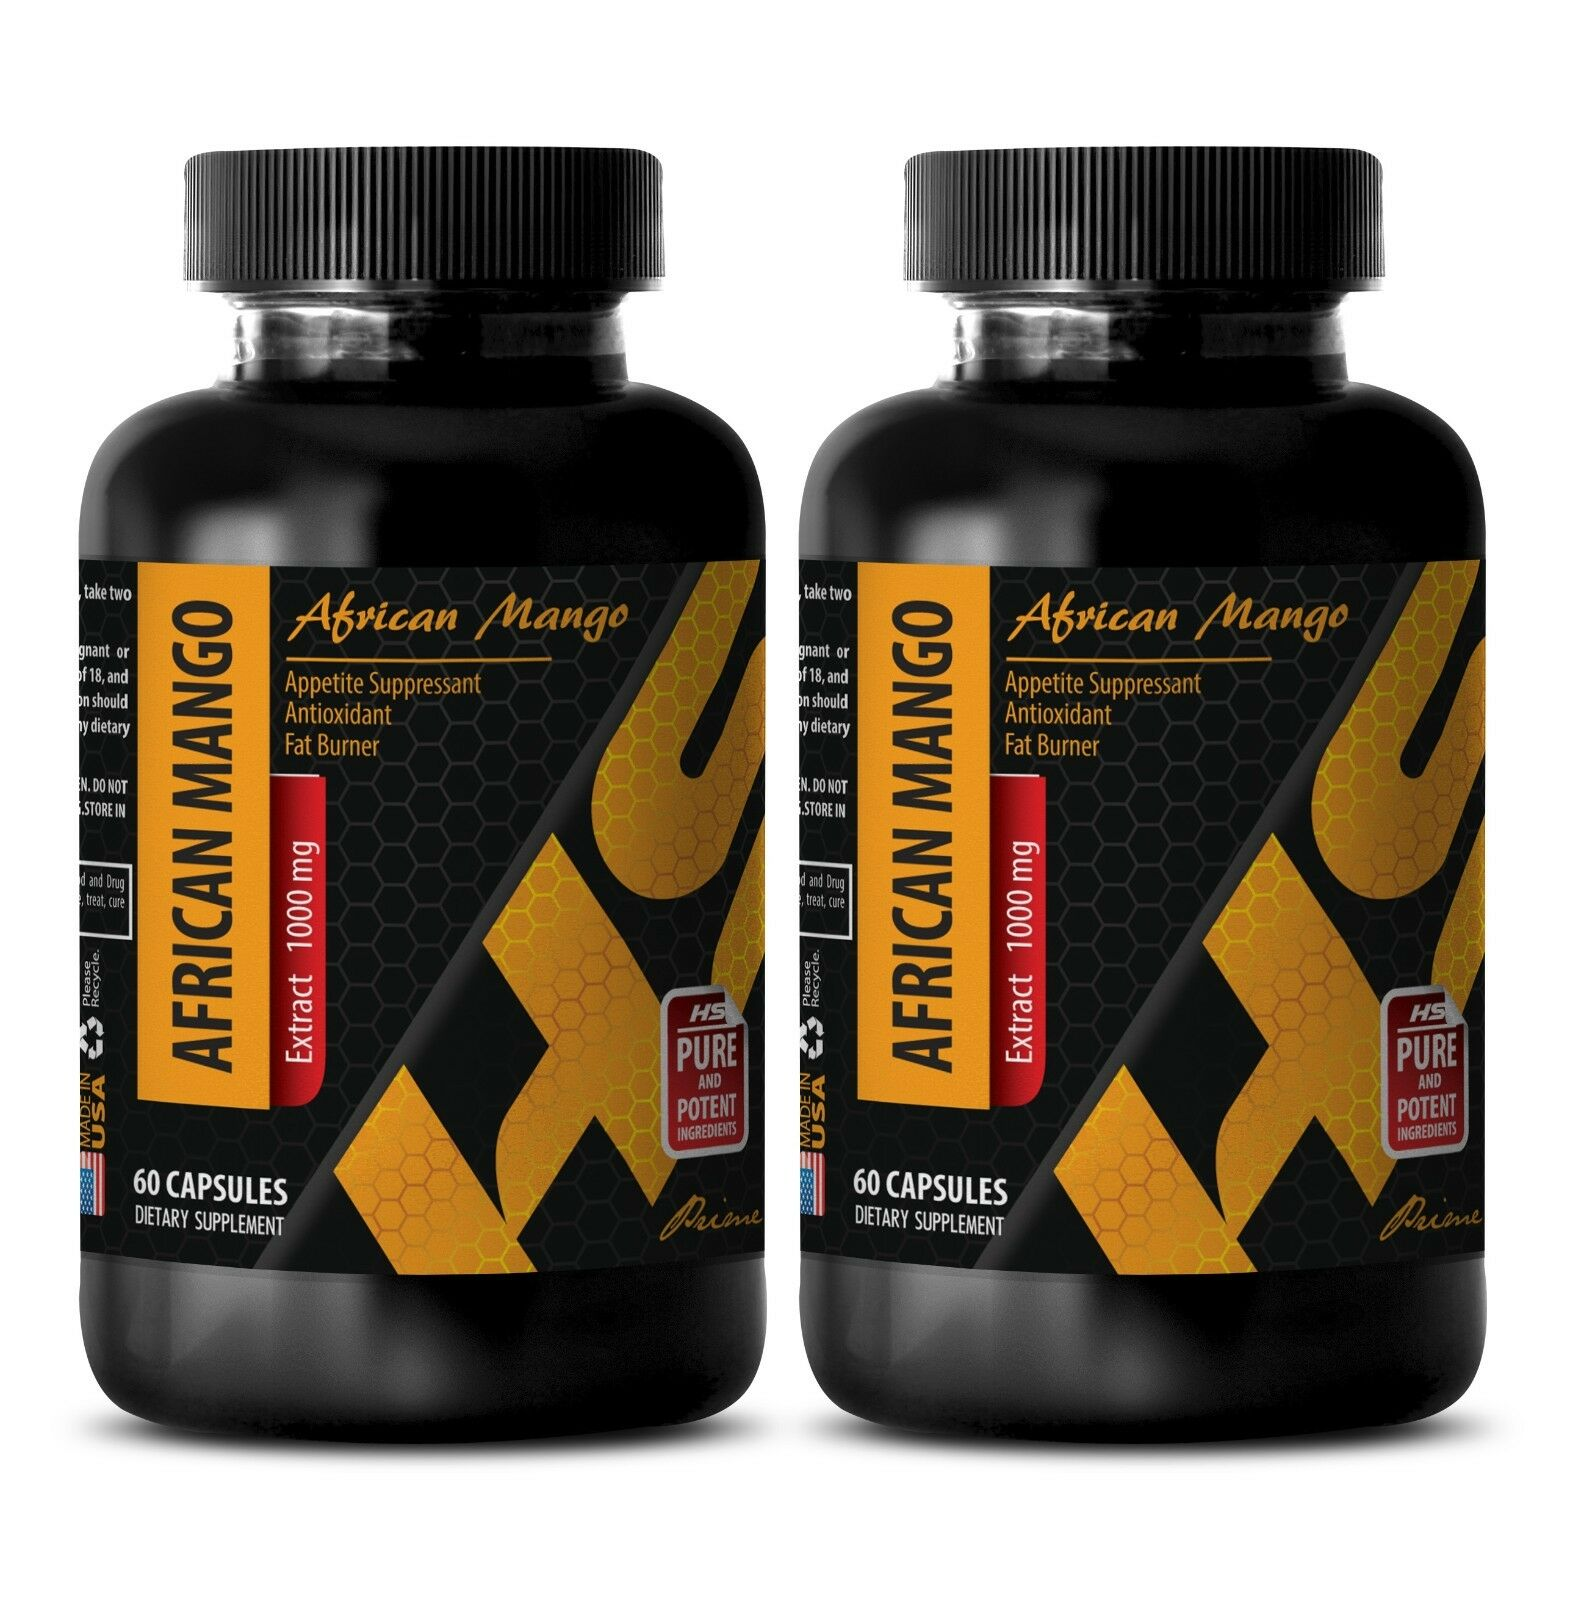 Fat burner weight loss - PURE AFRICAN MANGO EXTRACT 1000mg 2 Bottles 120 Capsule